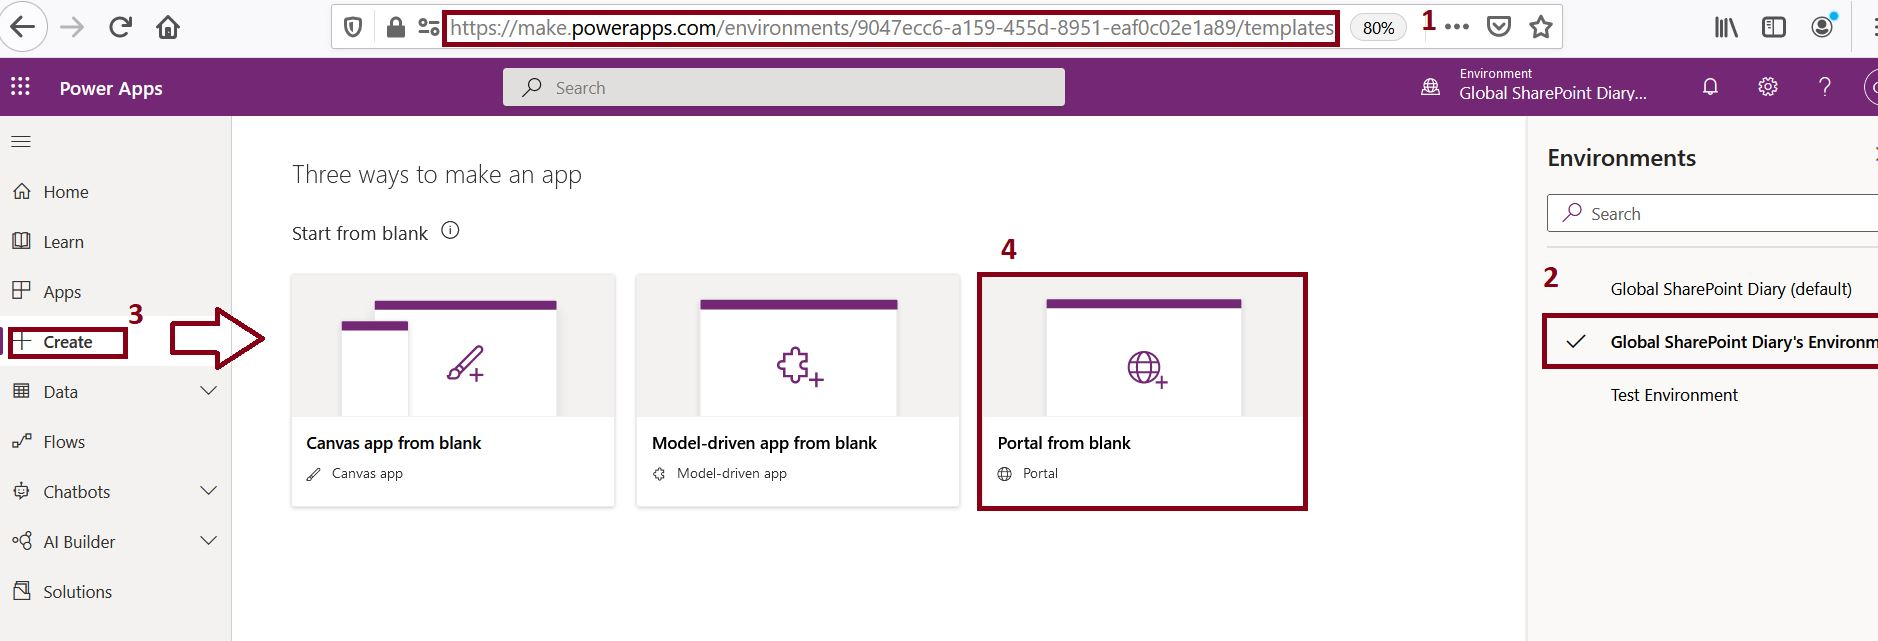 PowerApps portal from blank - steps to create Power Apps portal